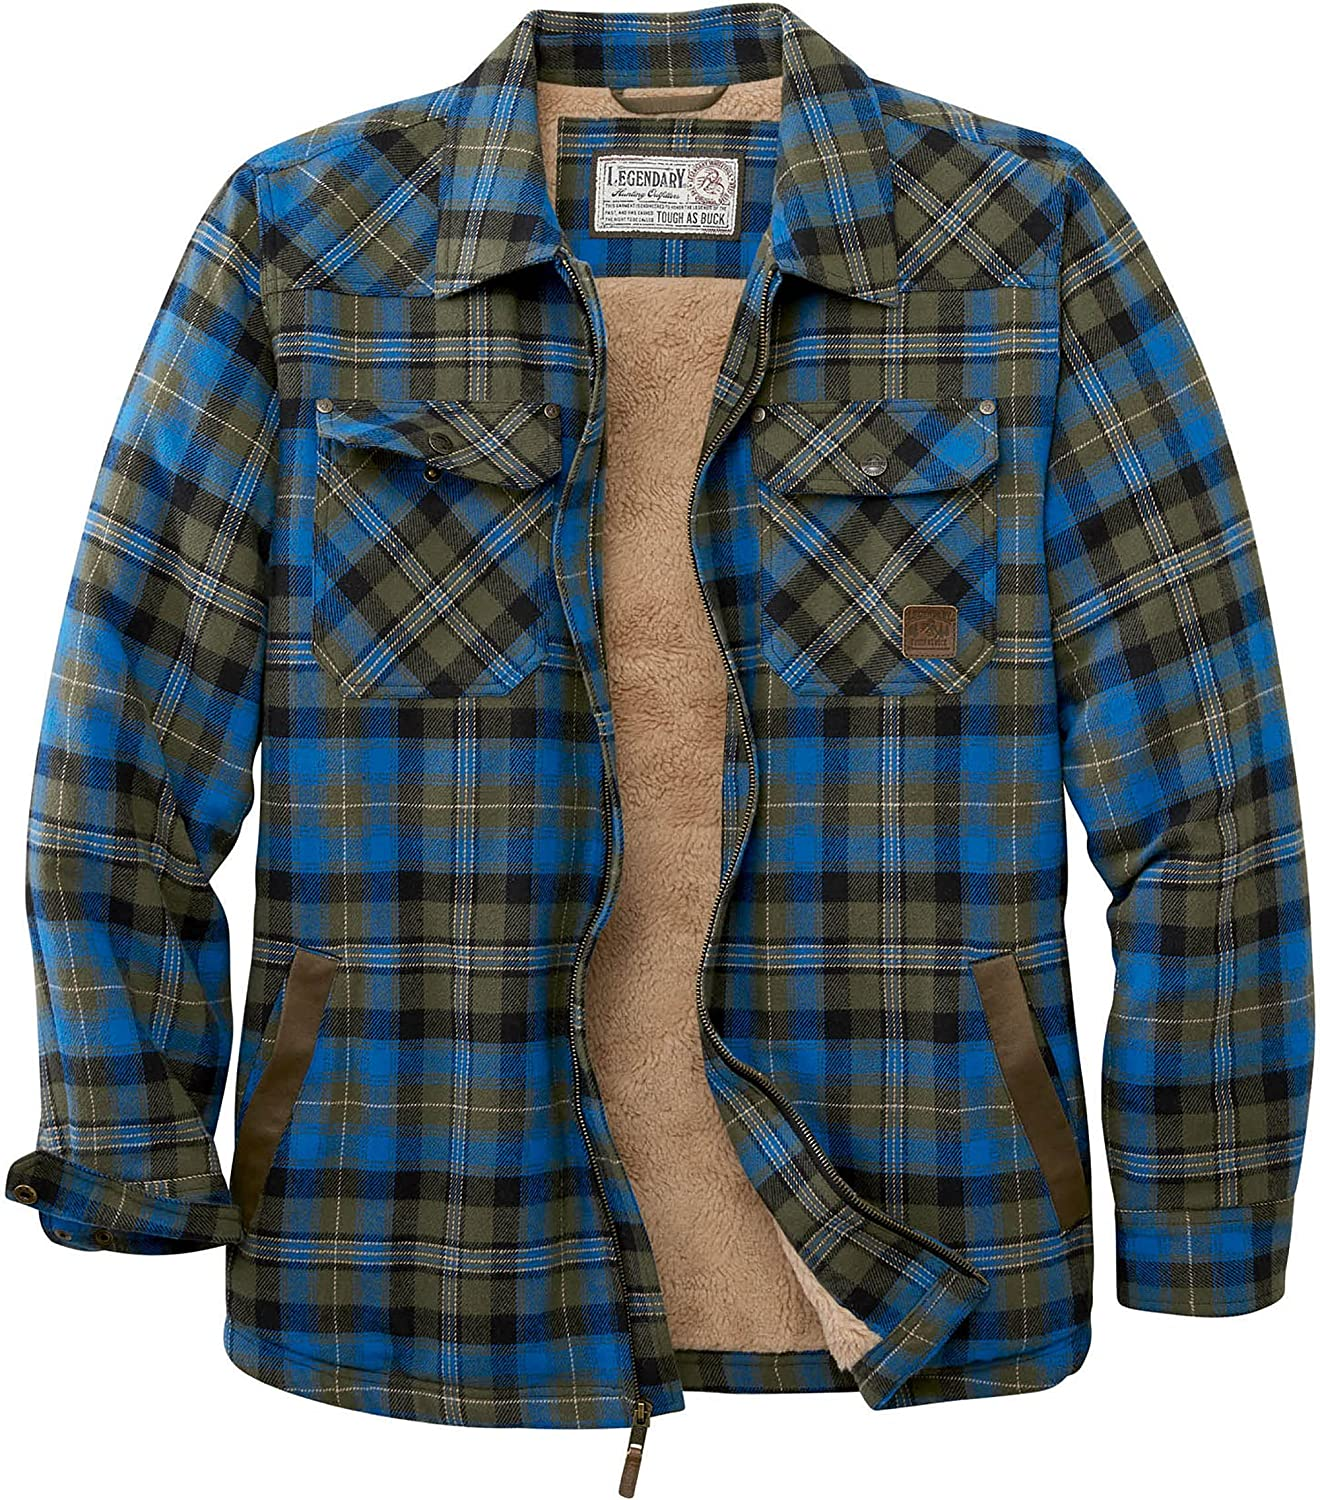 Super sale period limited Large special price !! Legendary Whitetails mens Tough as Flannel Buck Berber Shi Lined